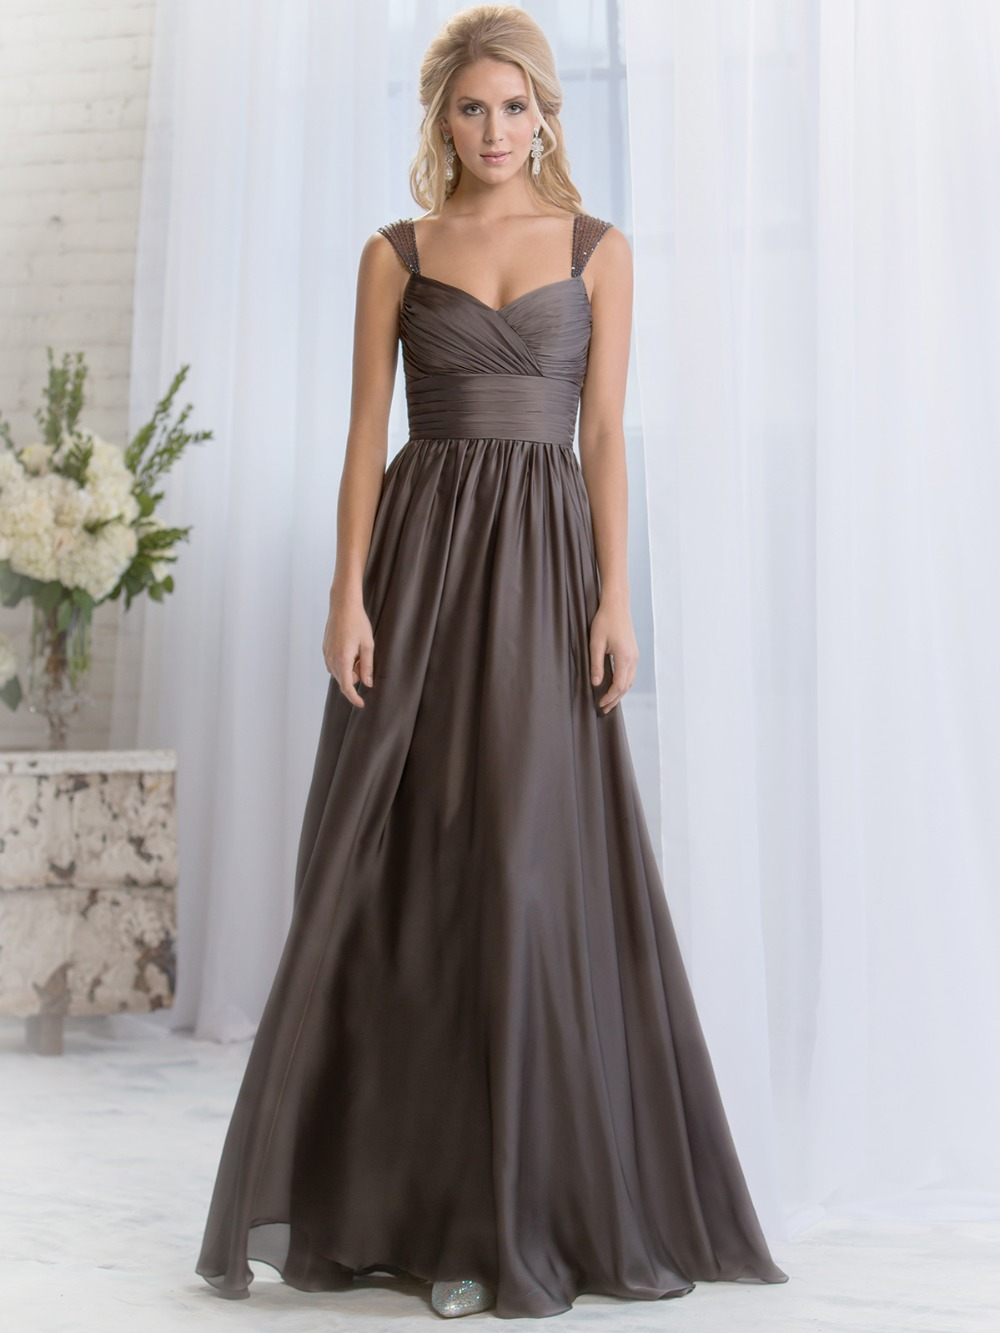 Long brown dresses dress yp popular brown long sleeve bridesmaid dress buy cheap brown long ombrellifo Choice Image